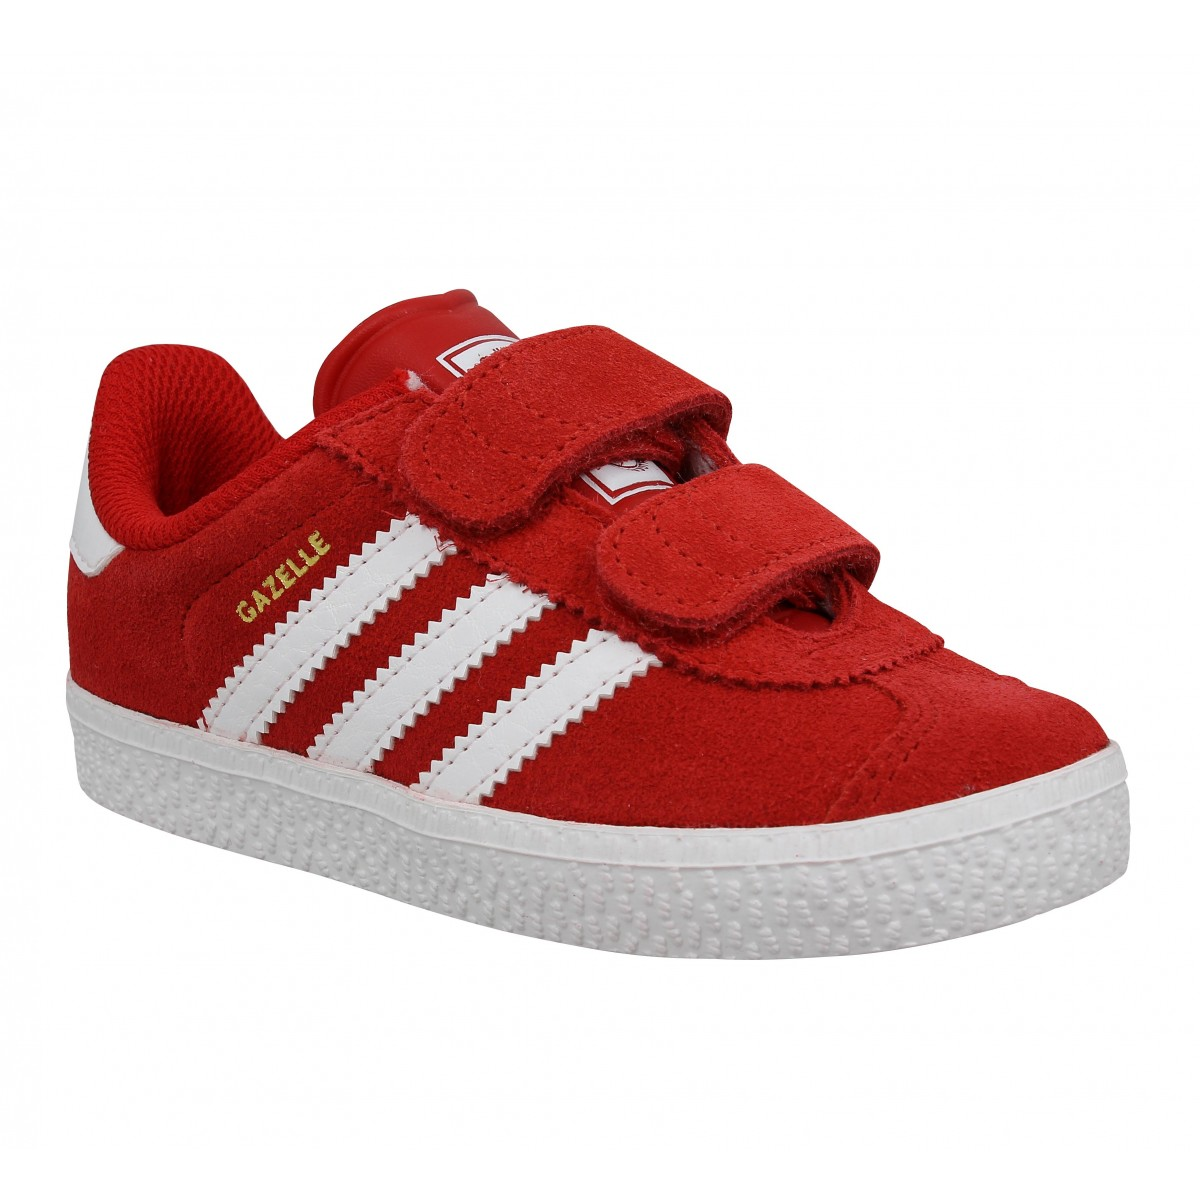 Baskets ADIDAS Gazelle 2 velcro Enfant Rouge